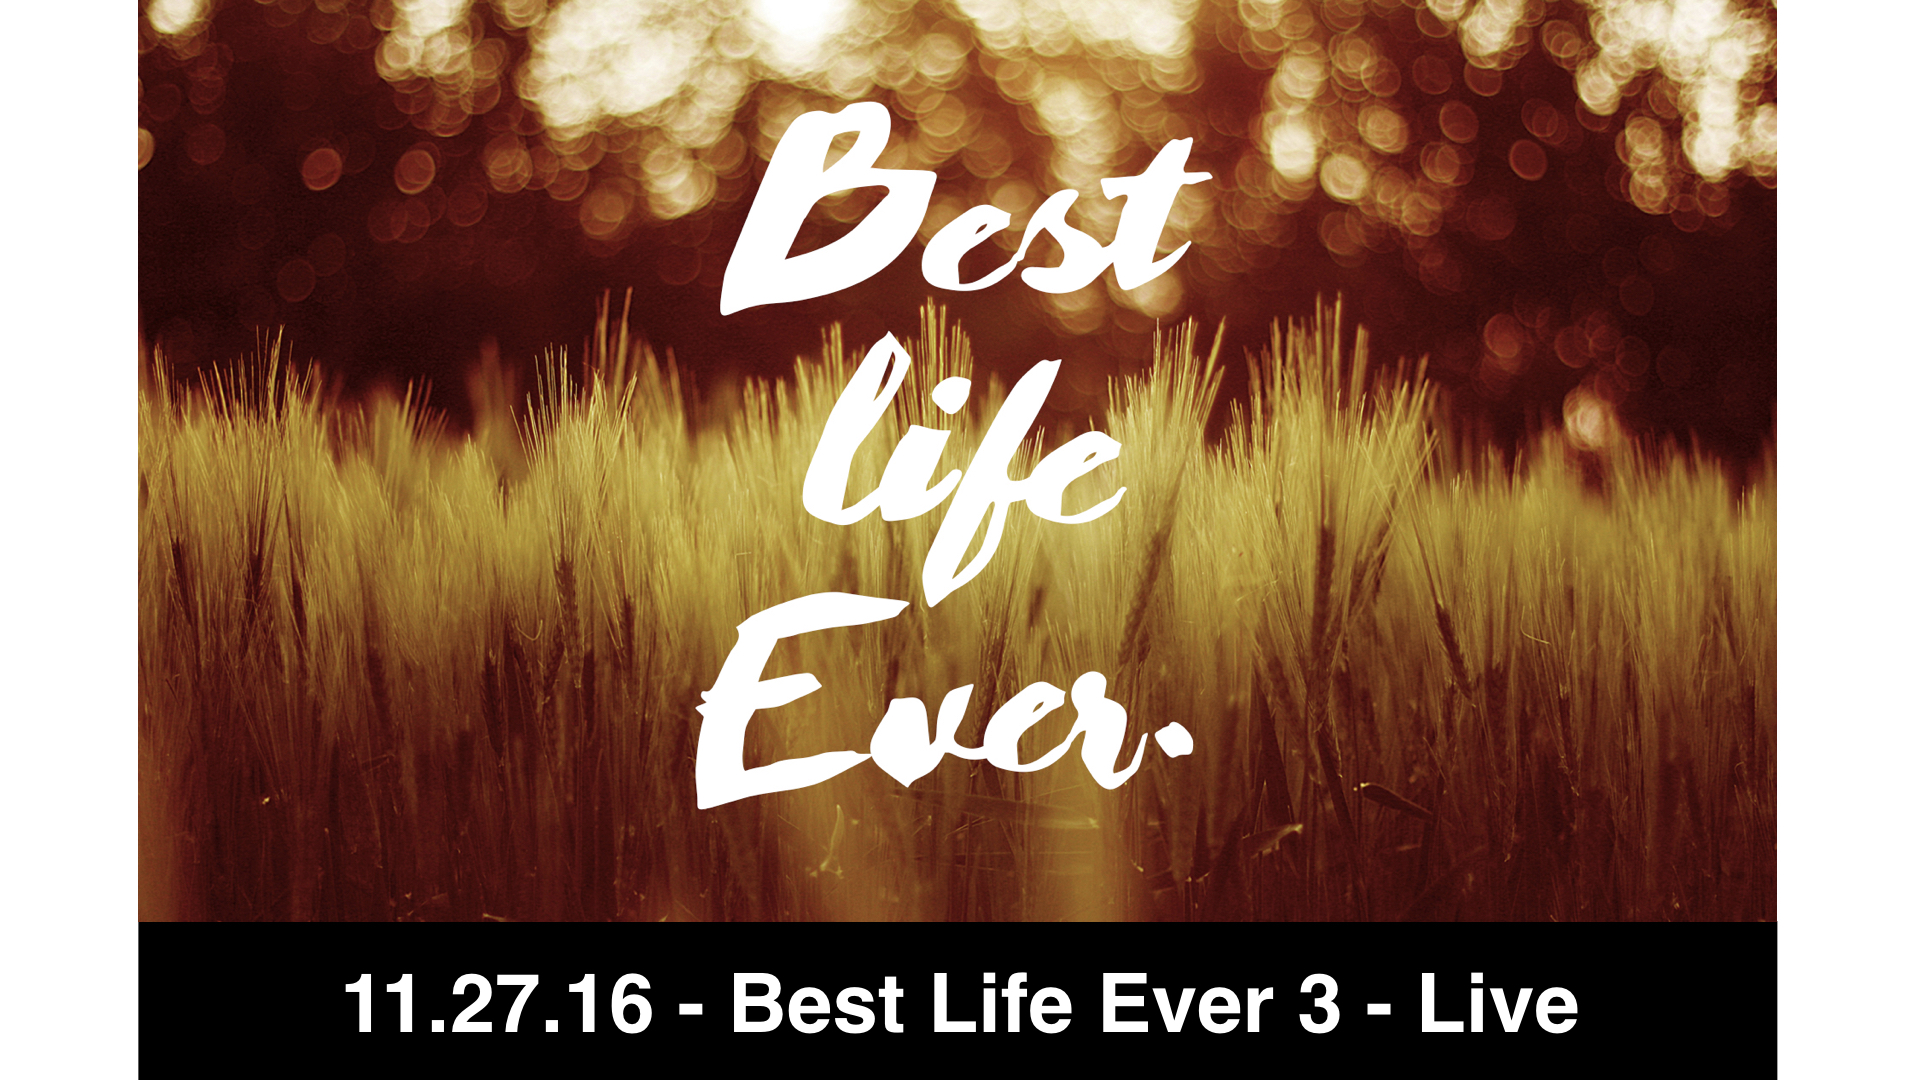 11.27.16 - Best Life Ever 3 - Live